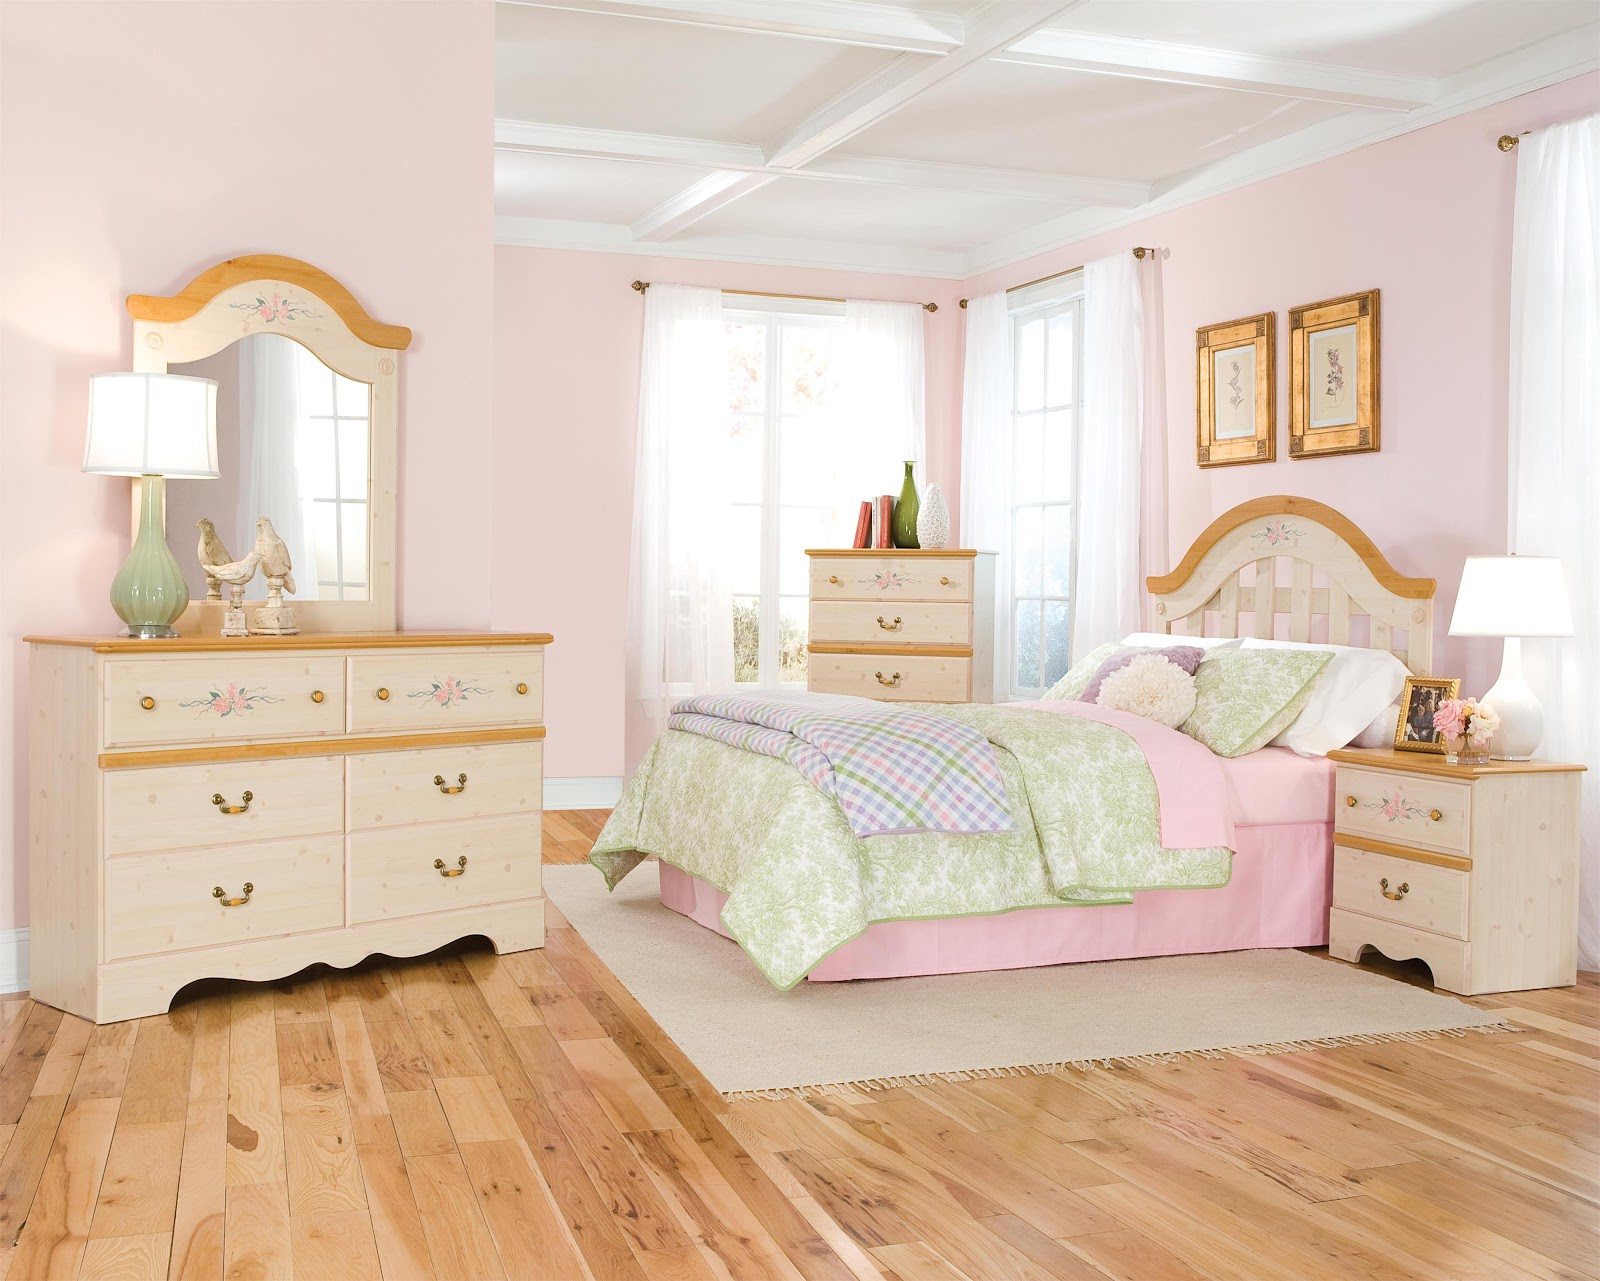 Knoxville Wholesale Furniture: Perfect Bedroom For Your